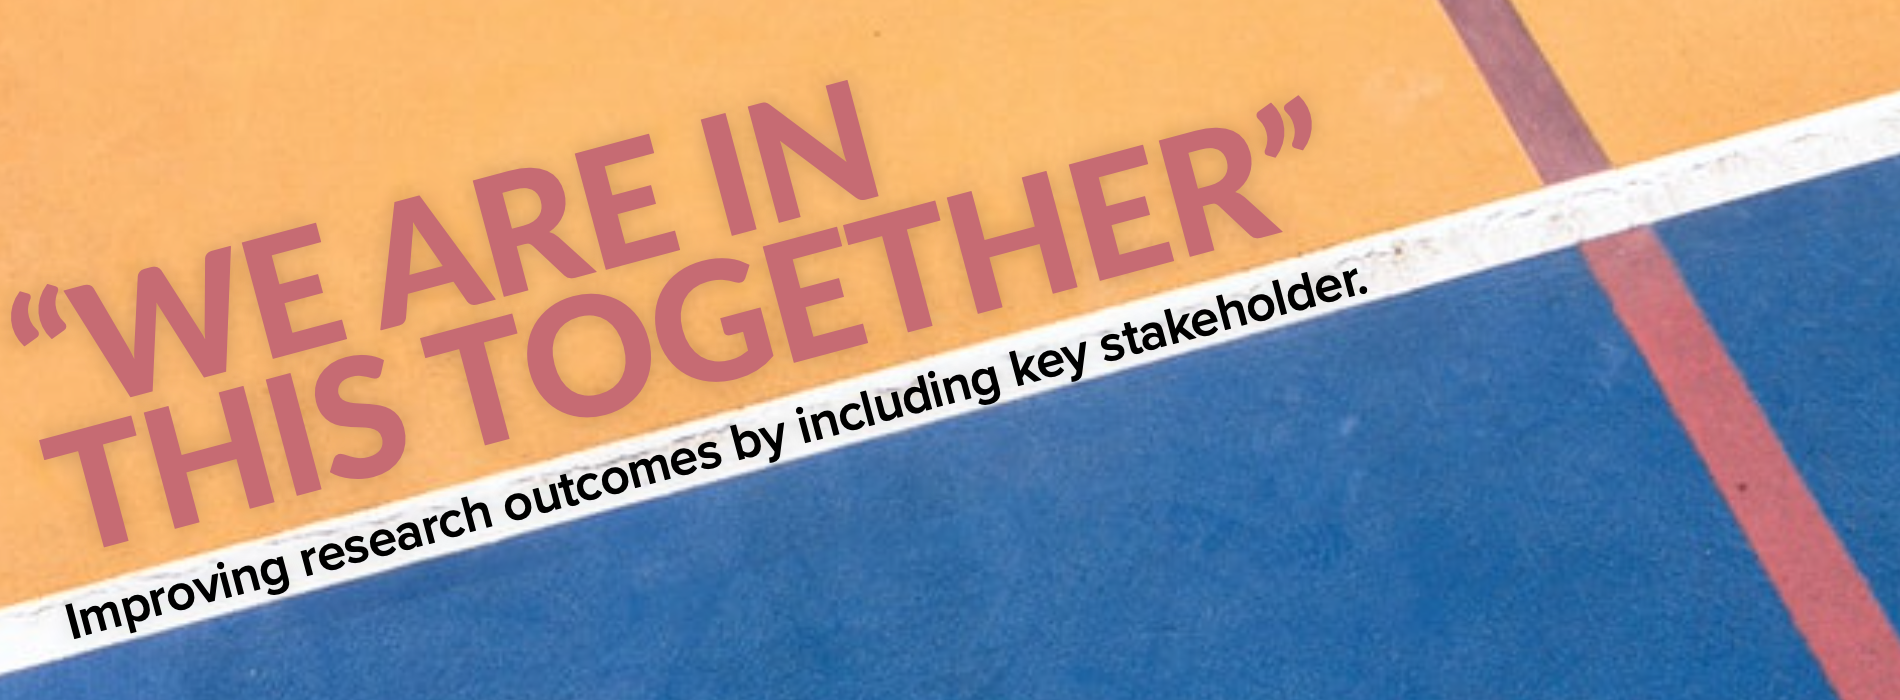 We are in this together: Improving research outcomes by including key stakeholders.